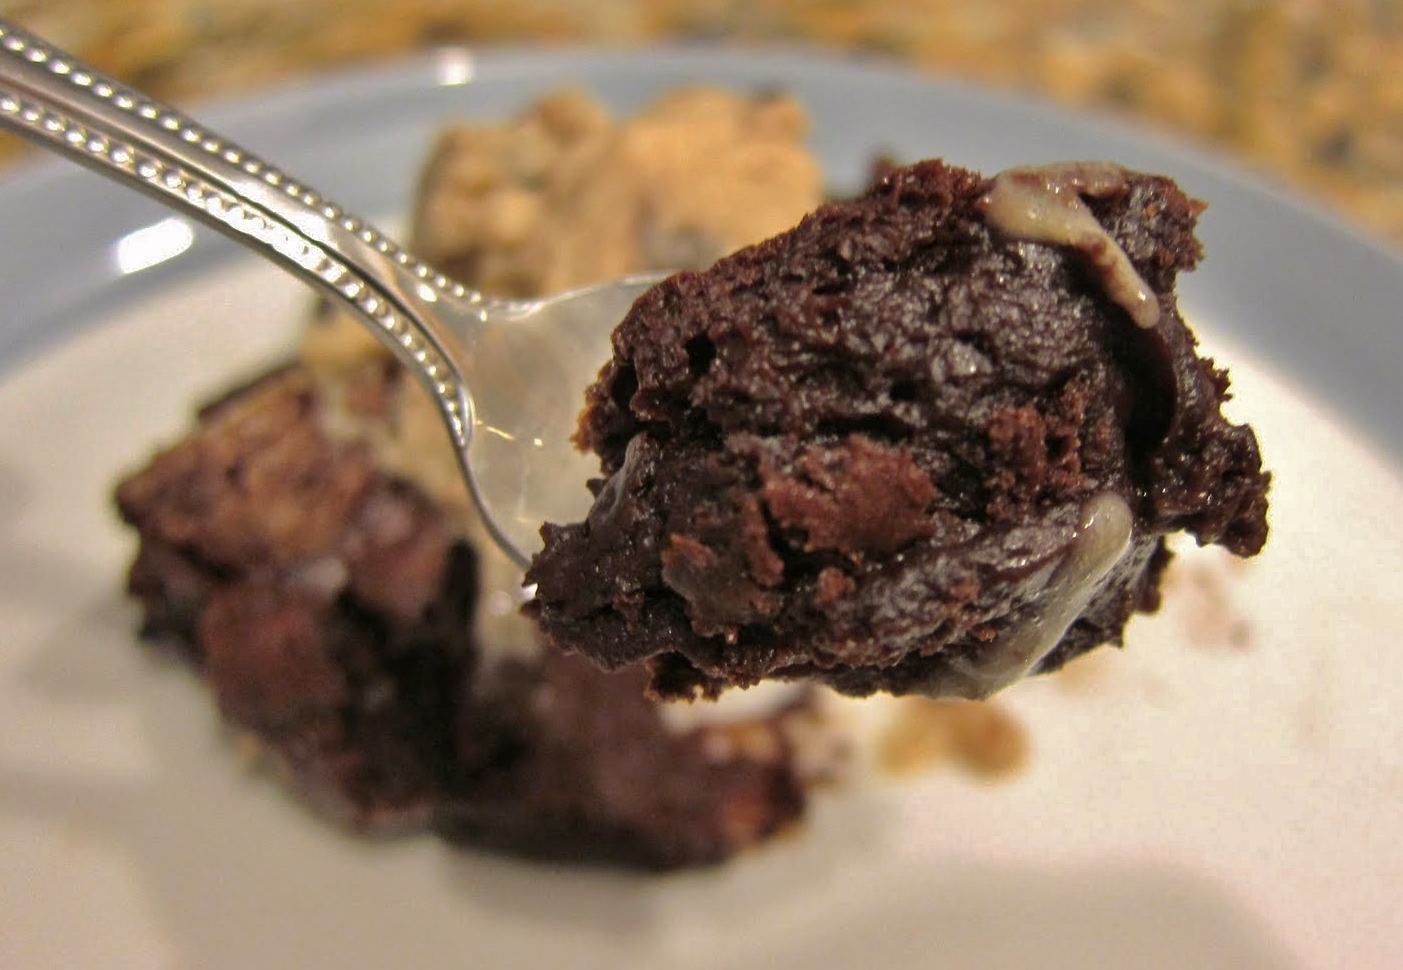 The Vegan Chronicle: Hot Chocolate Souffle